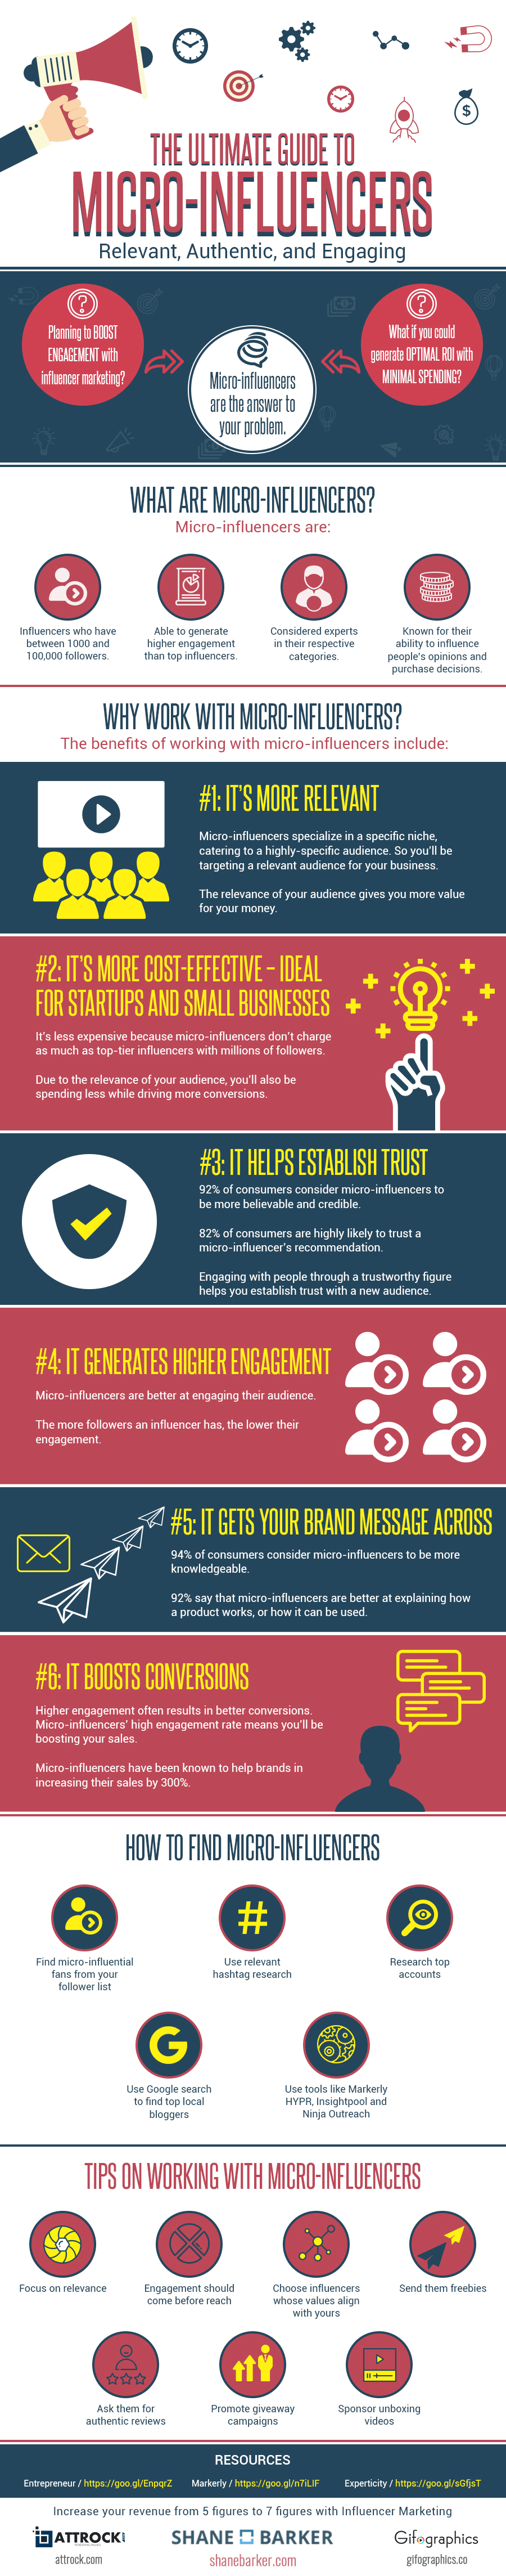 Learn all you need to know about Micro-Influencers: the what, who, and why you need to start working with them - in this great infographic.